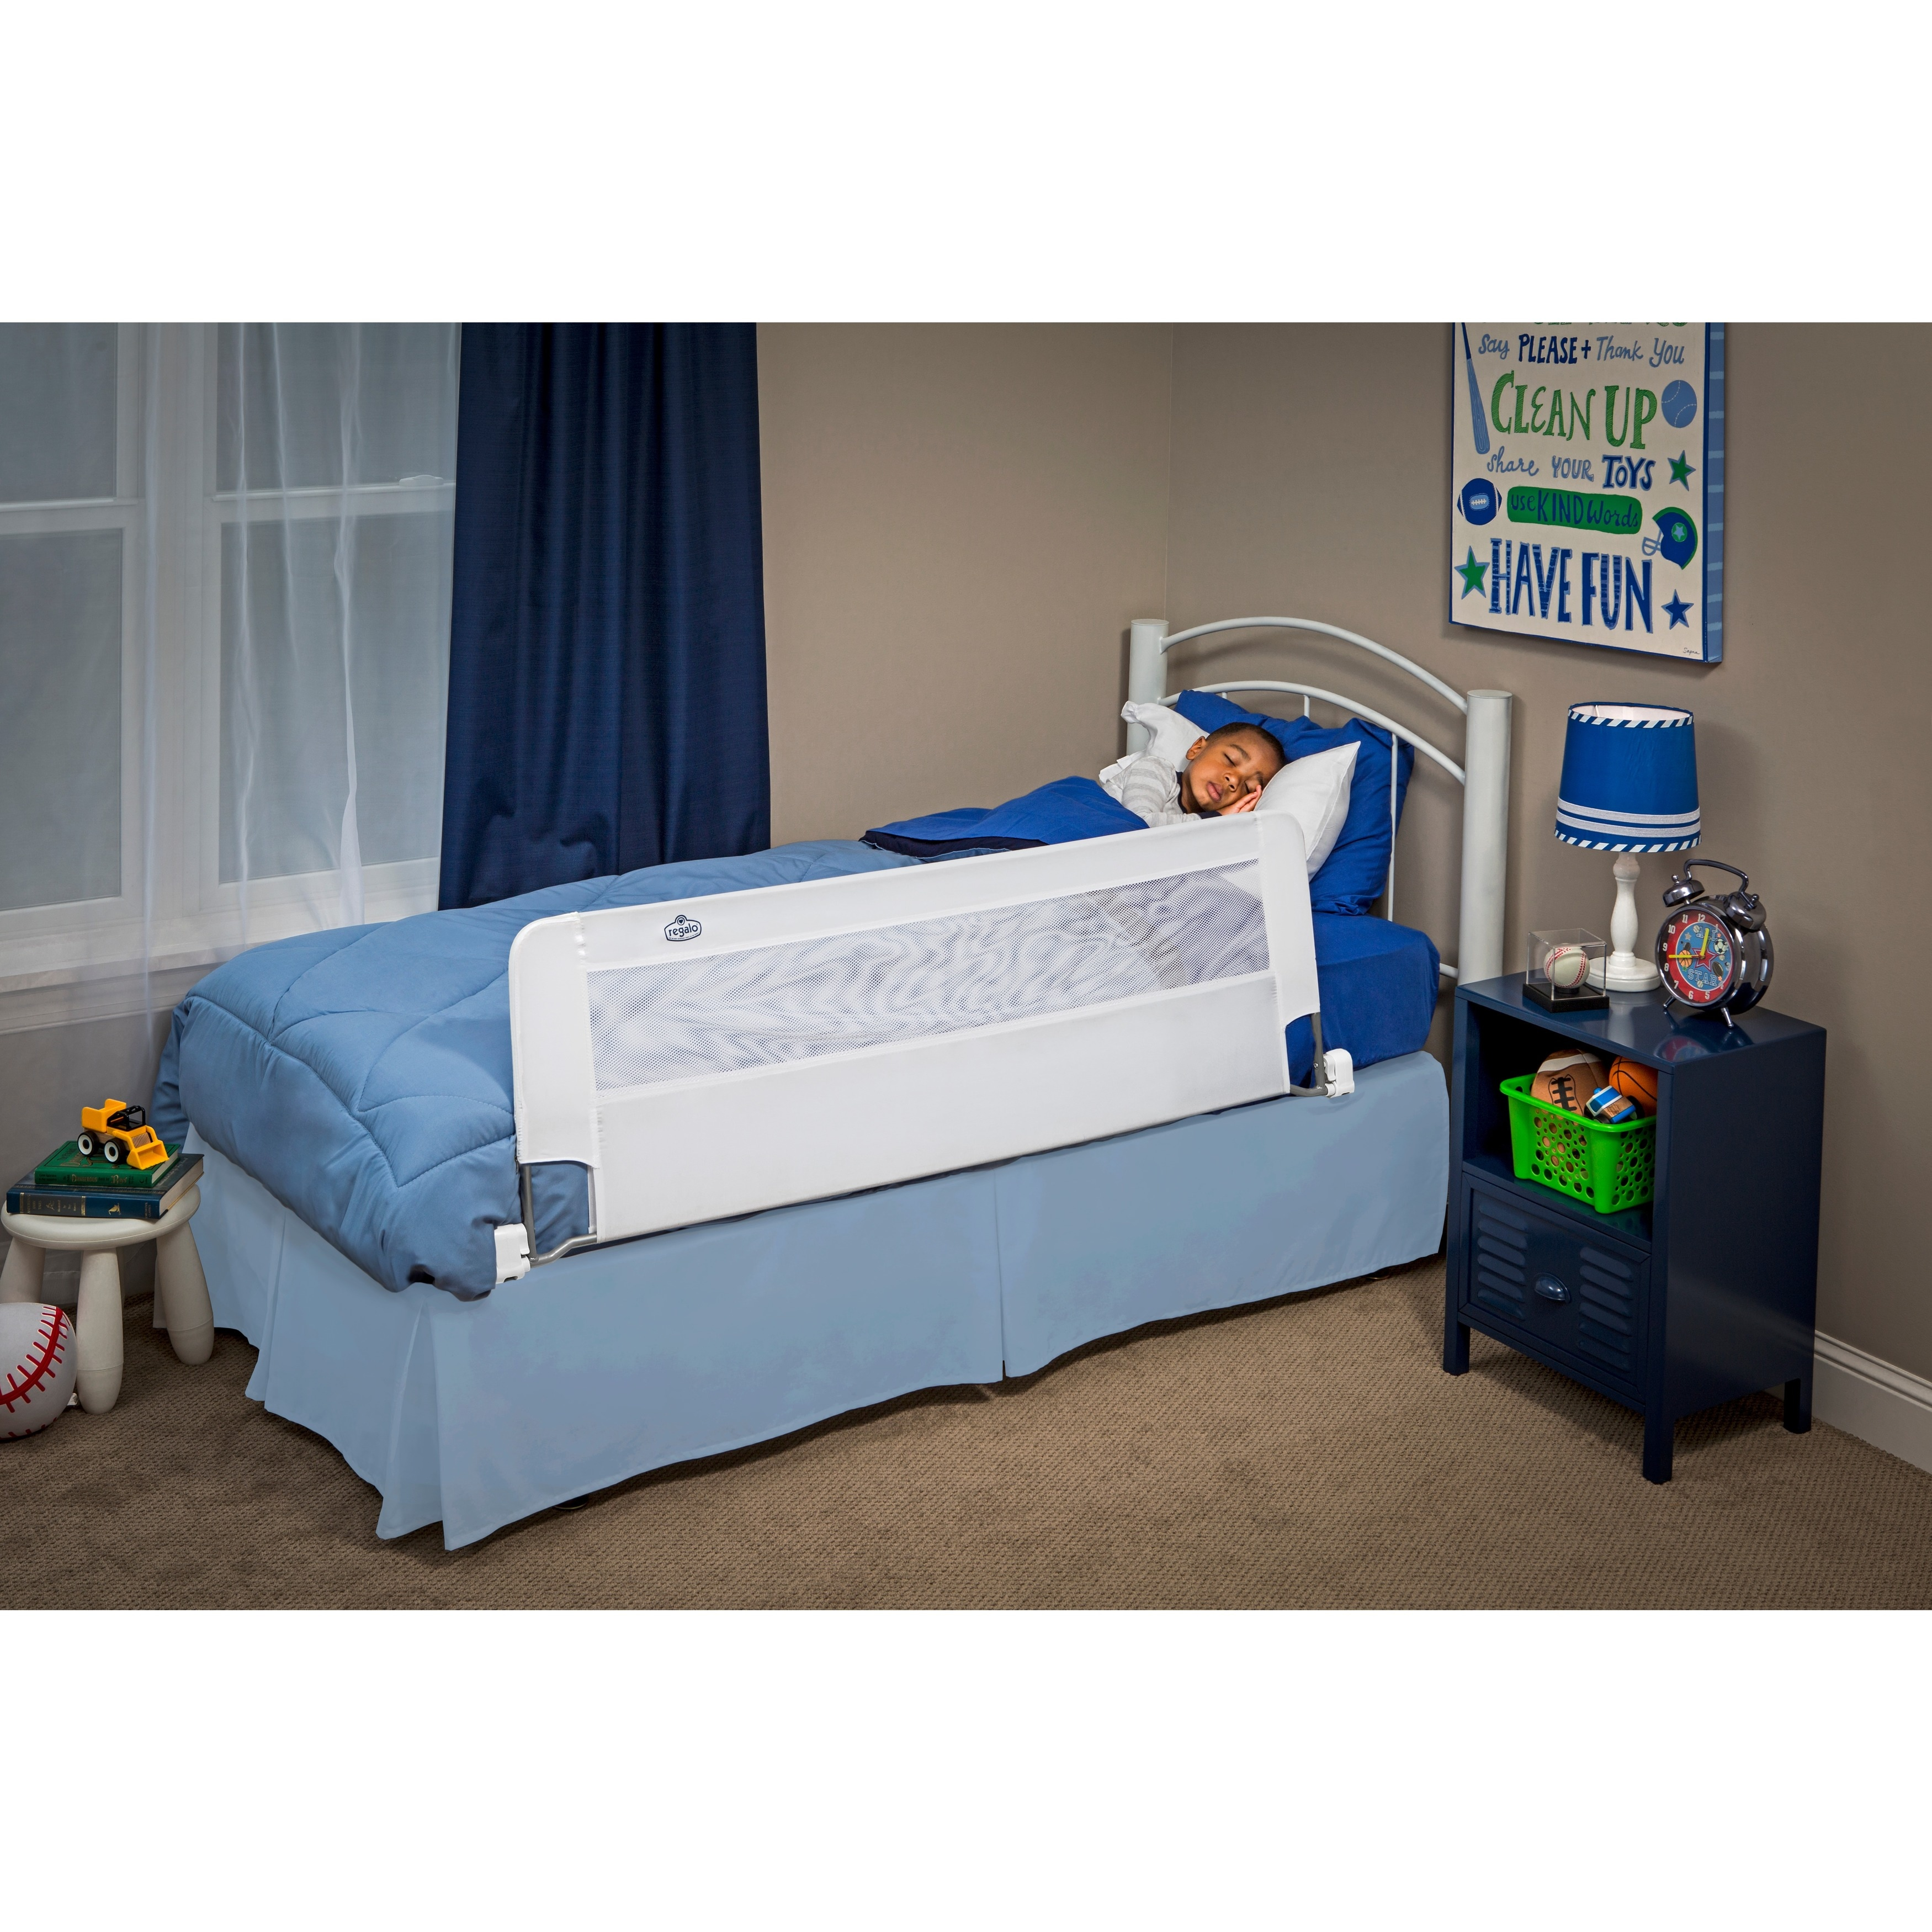 rail room home for healthcare medical grab with life assist bed patient board elderly products rails shop enhancing